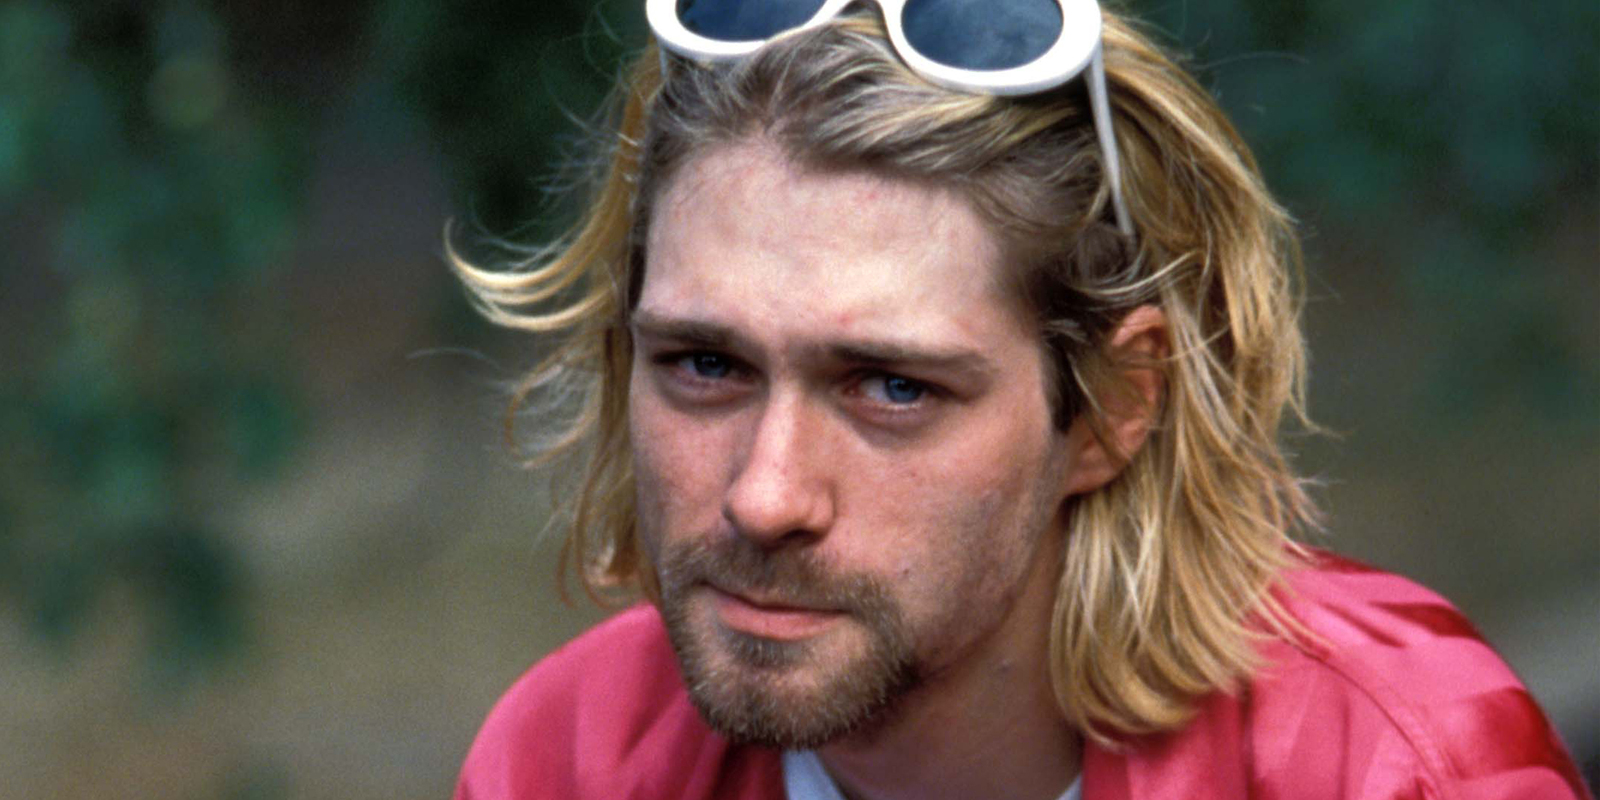 Kurt Cobain Natural Hair